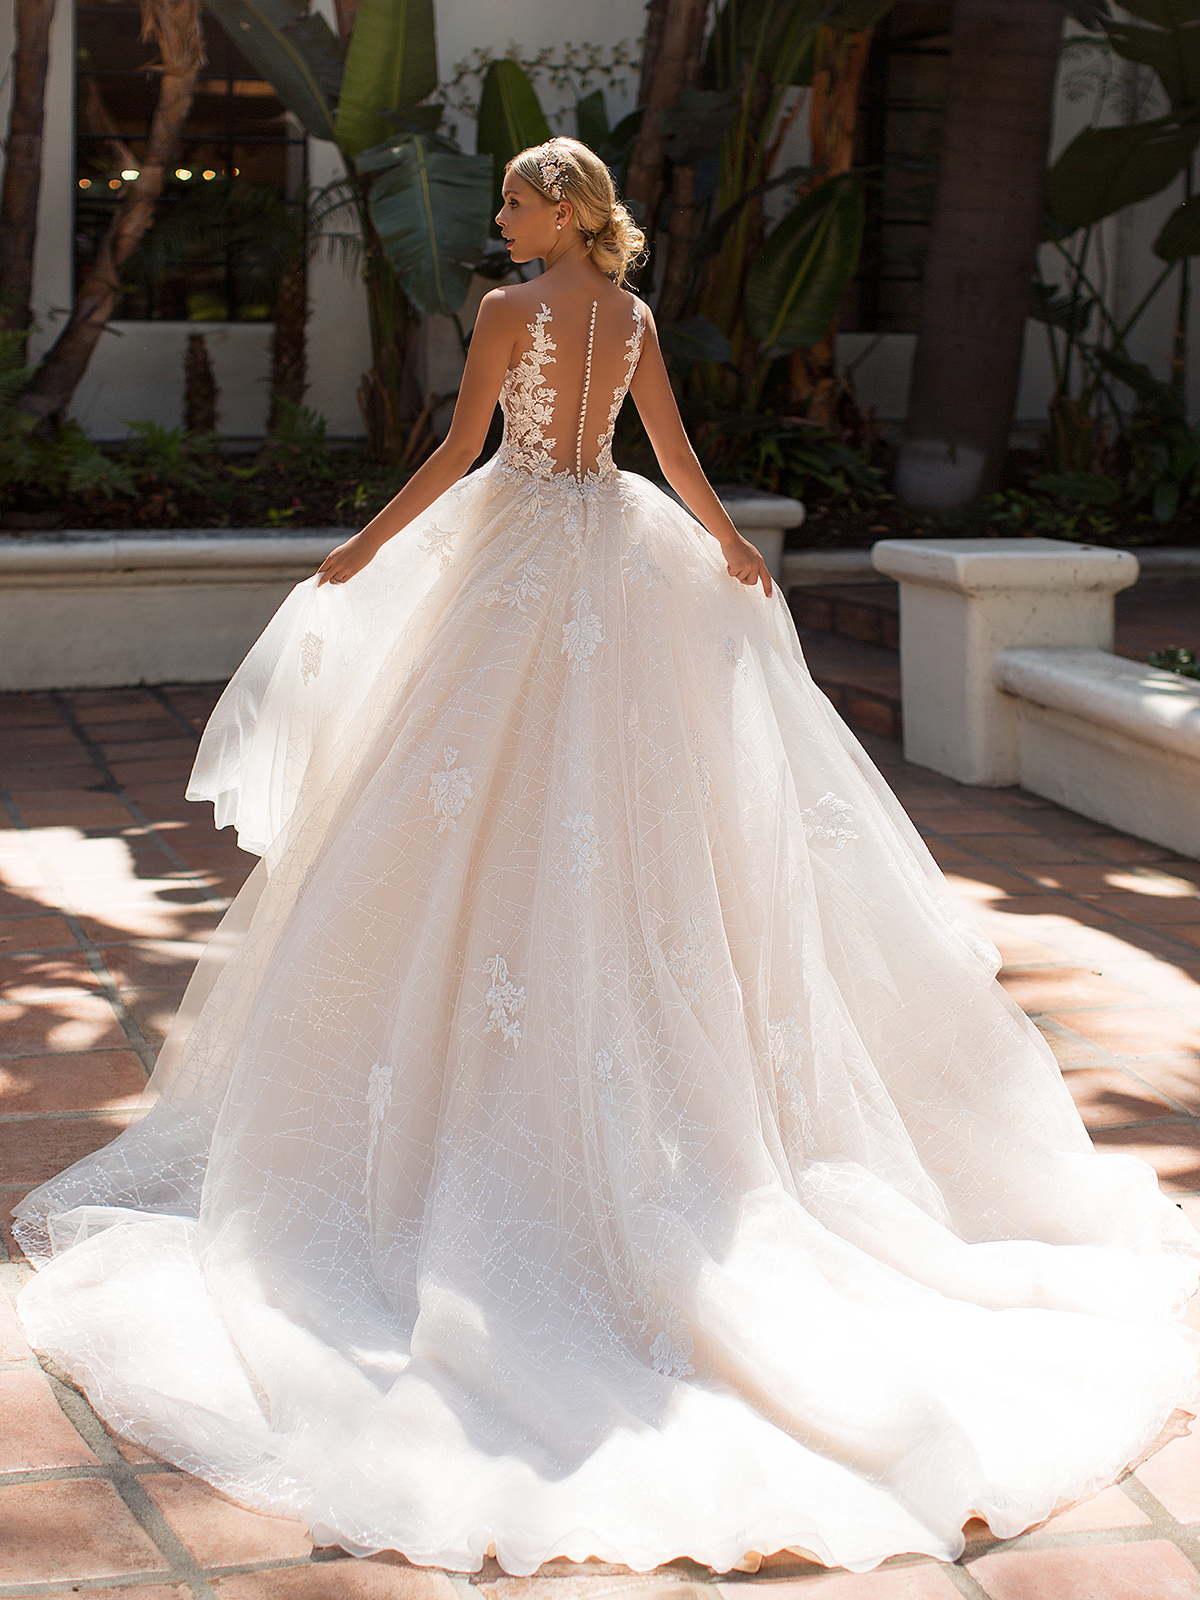 10 Gorgeous Ball Gown Wedding Dresses – Moonlight Bridal – J6704-B